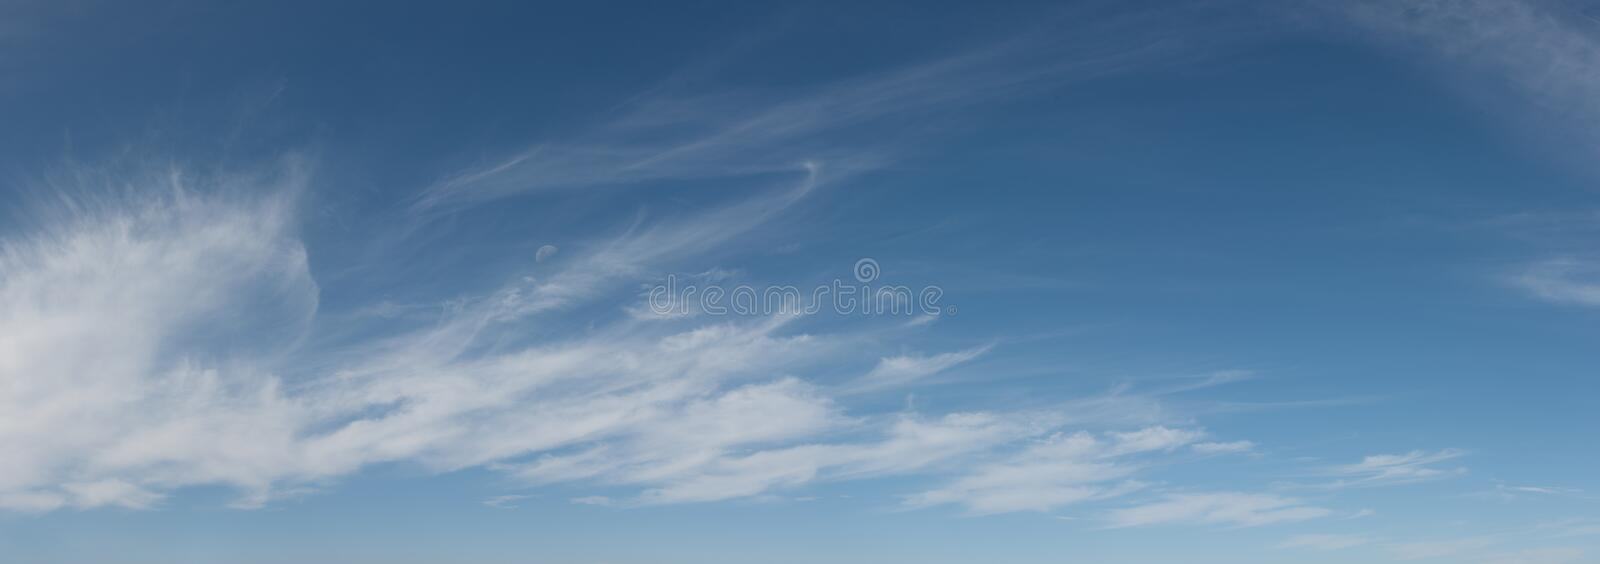 High altitude wispy clouds with half moon visible stock photo